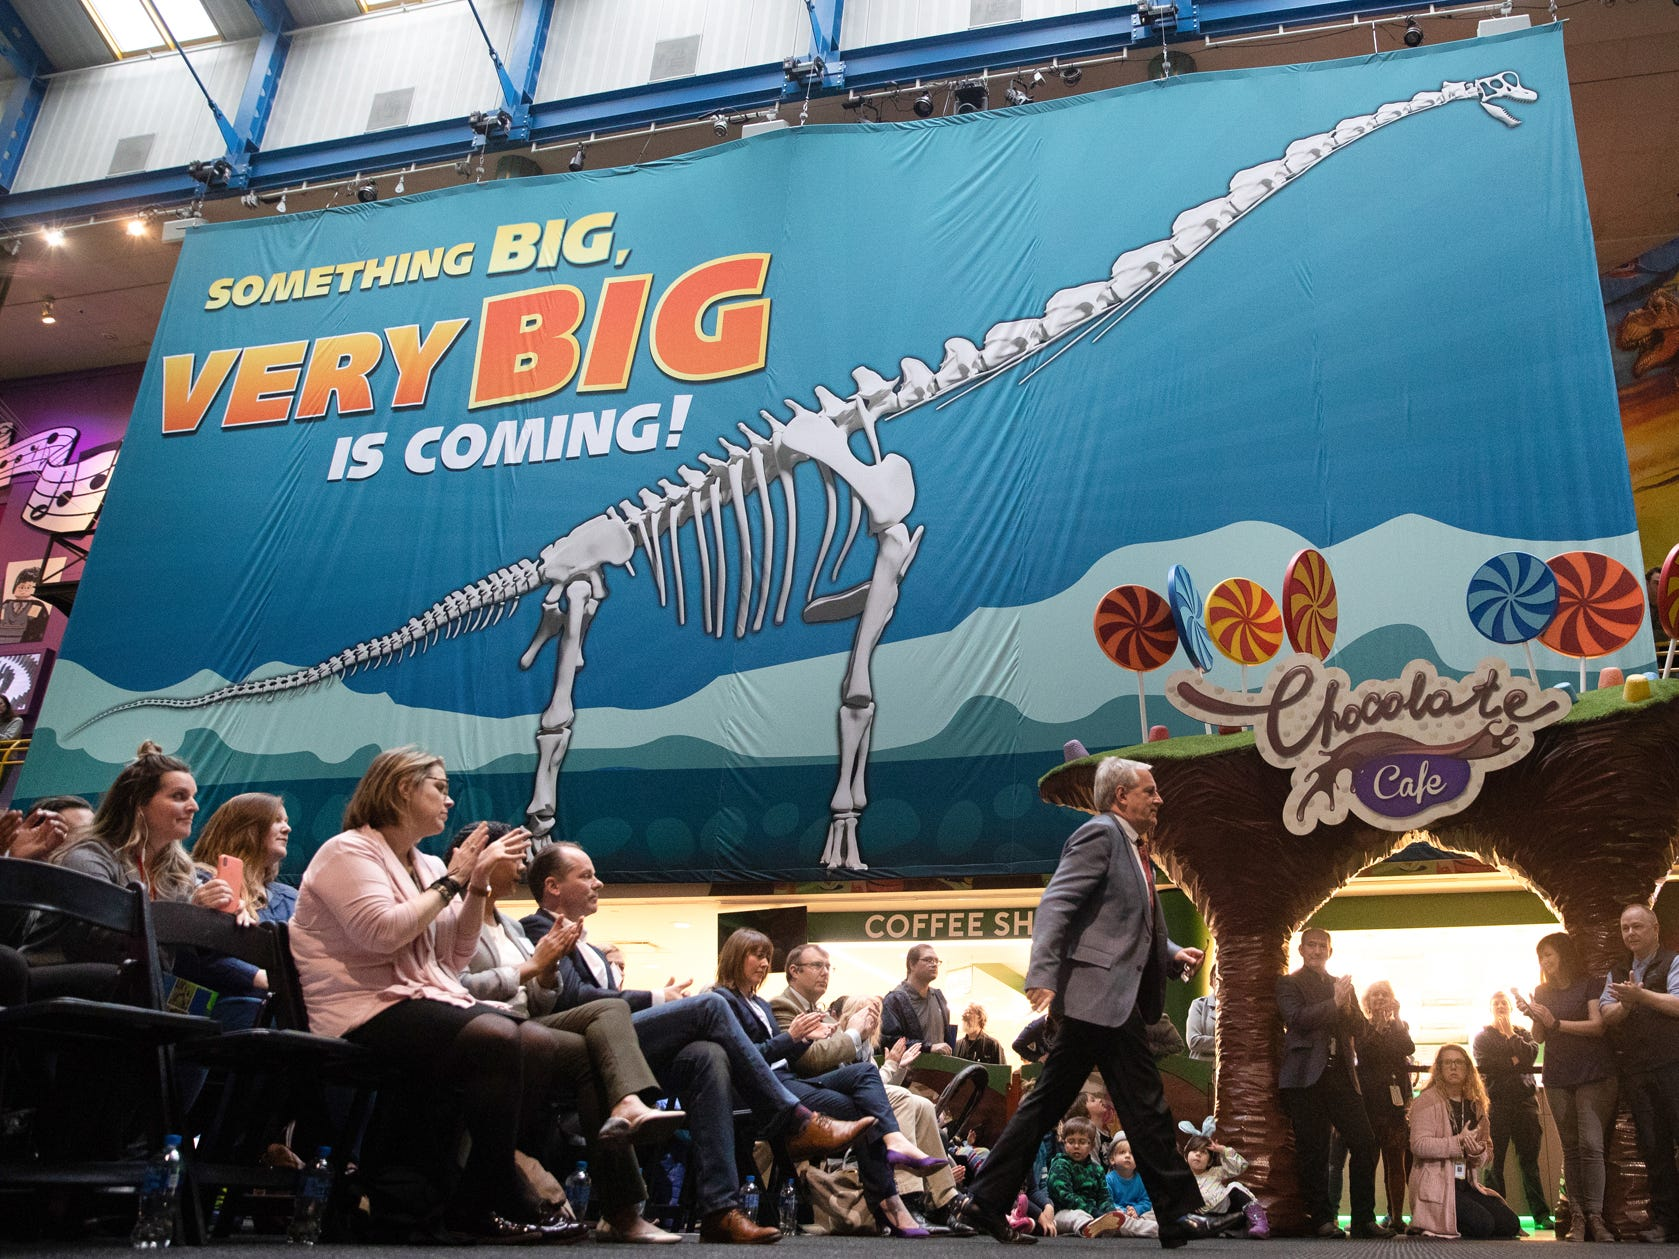 The crowd gathered applauds as Professor Richard Herrington, the acting director of science at The Natural History Museum in London, makes his way to the podium to speak about a newly discovered femur of a Brachiosaur during a press conference at the Children's Museum of Indianapolis on Monday, March 25, 2019. The Children's Museum of Indianapolis, who will serve as Mission Jurassic leader, alongside The Natural History Museum, Naturalis Biodiversity Center and the University of Manchester, will work together to excavate the fossil-rich plot of land in northern Wyoming where the femur was found.